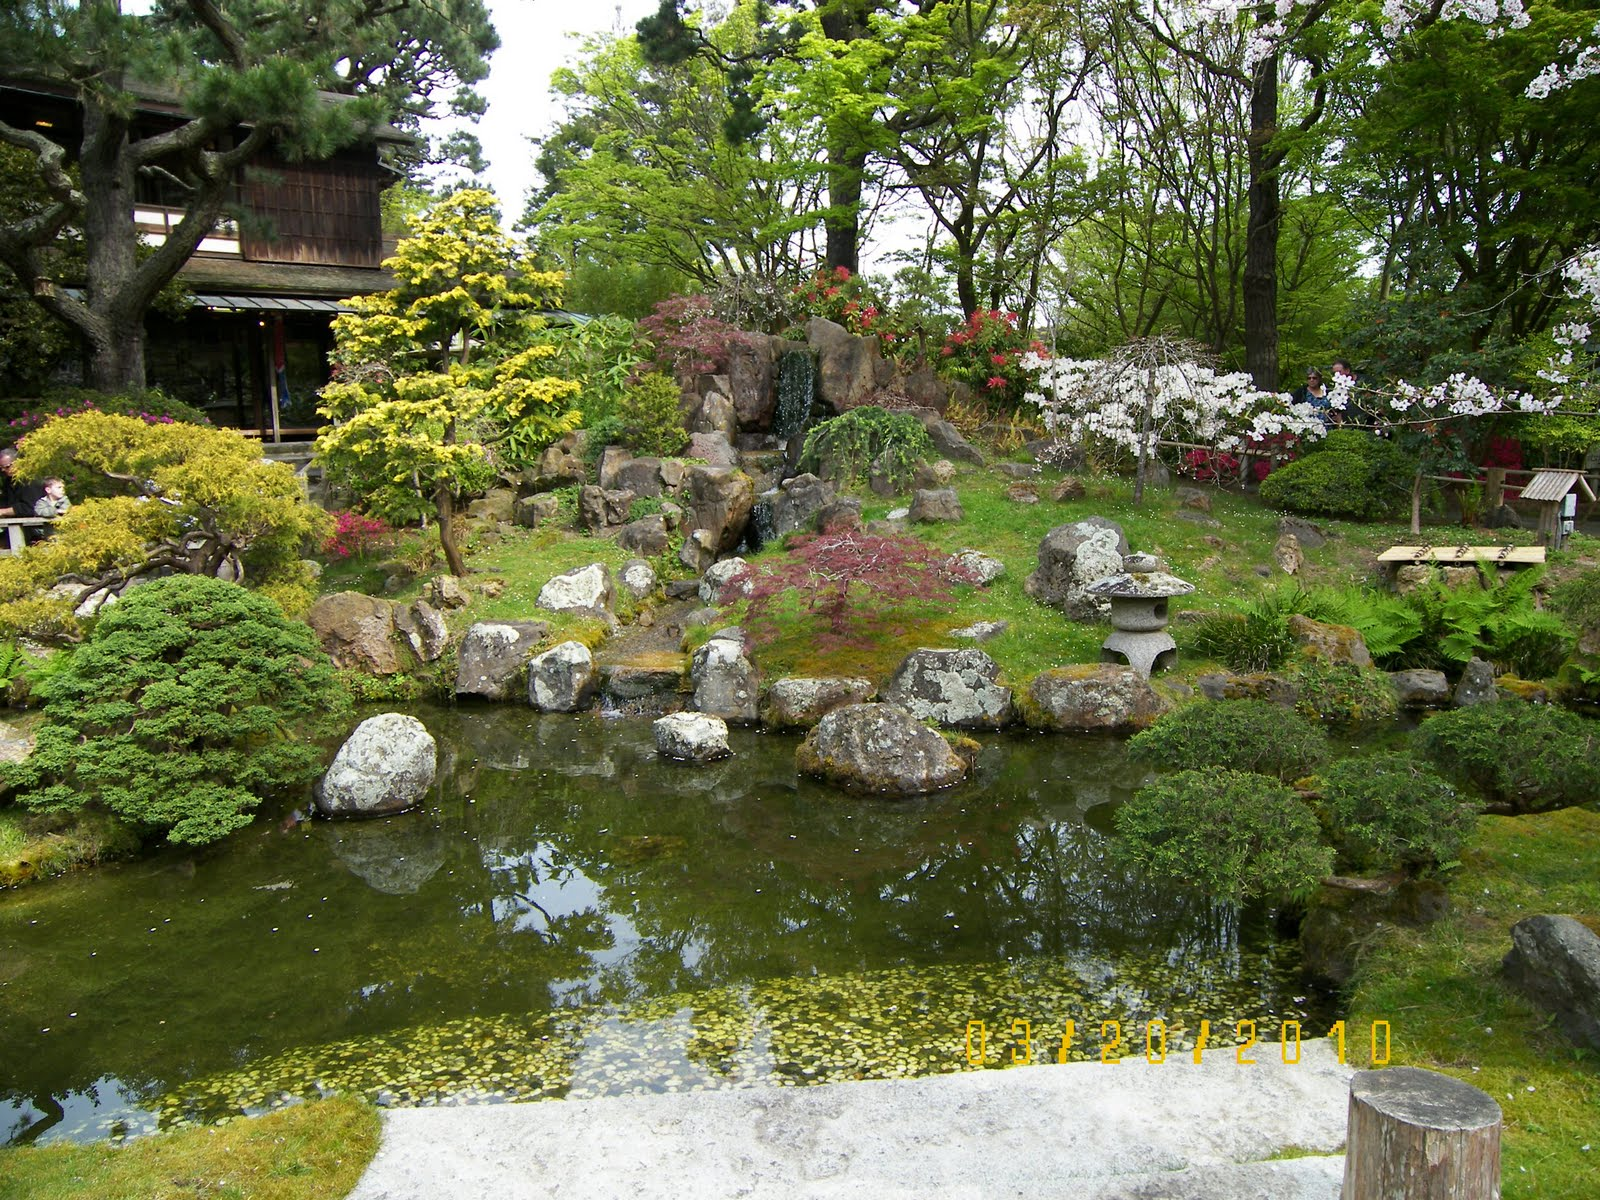 My koi pond 2010 visited sf japanese garden for Japanese garden with koi pond